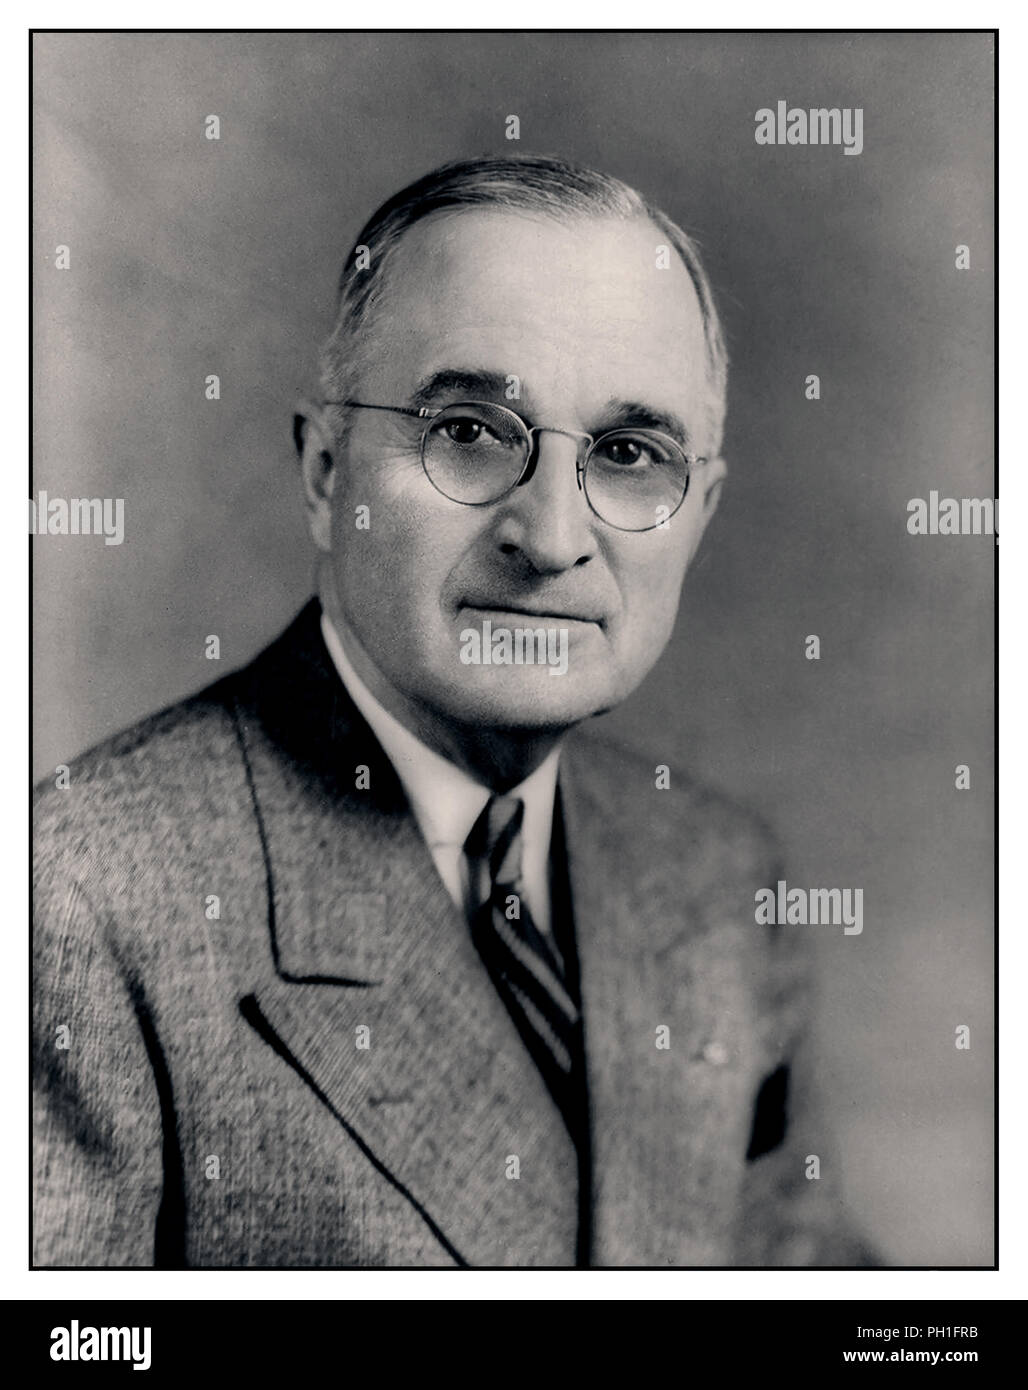 Vintage formal portrait of Democrat Harry S. Truman the 33rd President of the United States, taking office upon the death of Franklin D. Roosevelt. A World War I veteran, he assumed the presidency during the waning months of World War II and the beginning of the Cold War. - Stock Image